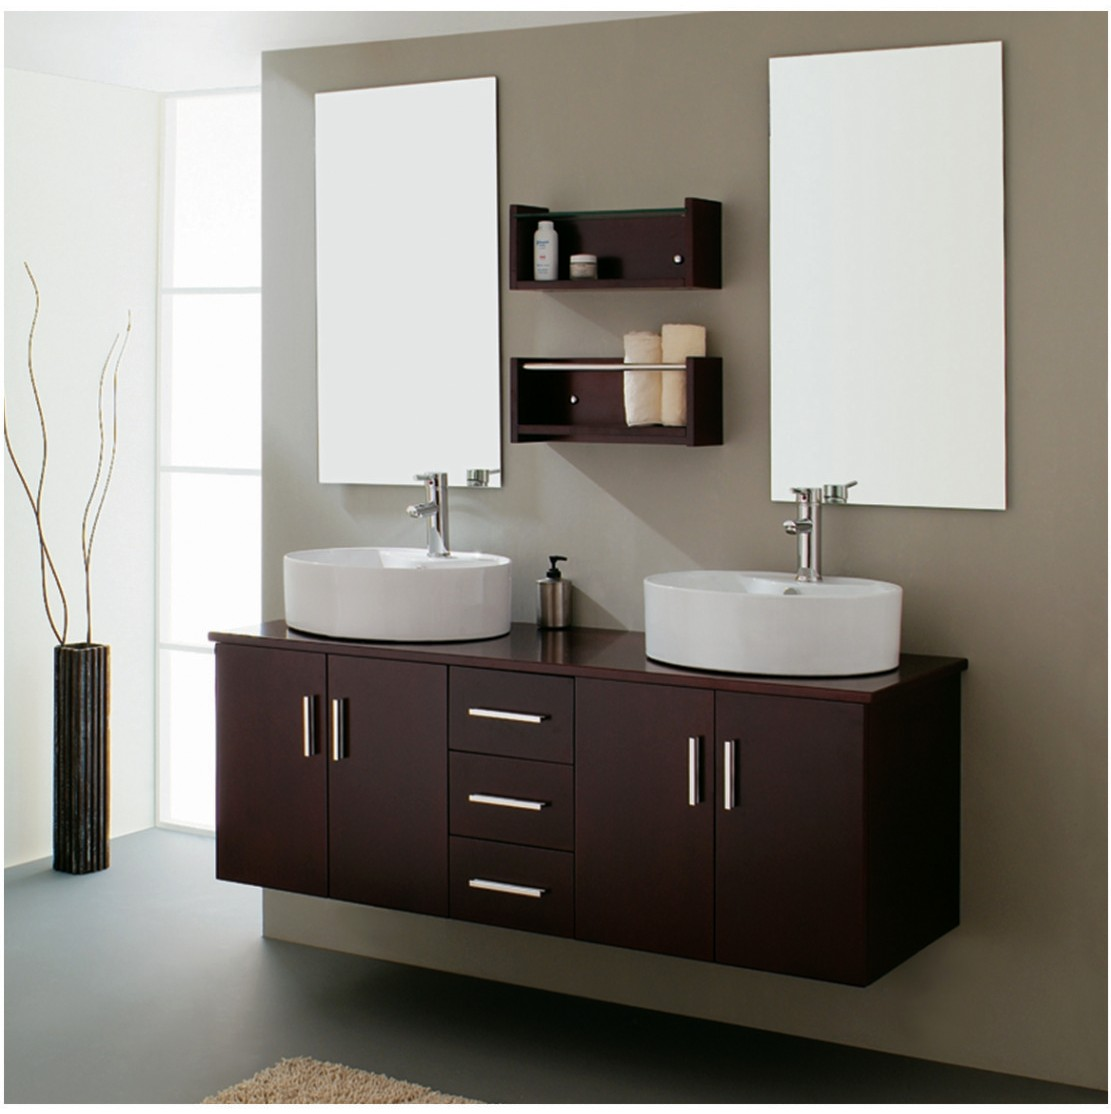 Modern bathroom double sink home decorating ideas for Bathroom home ideas